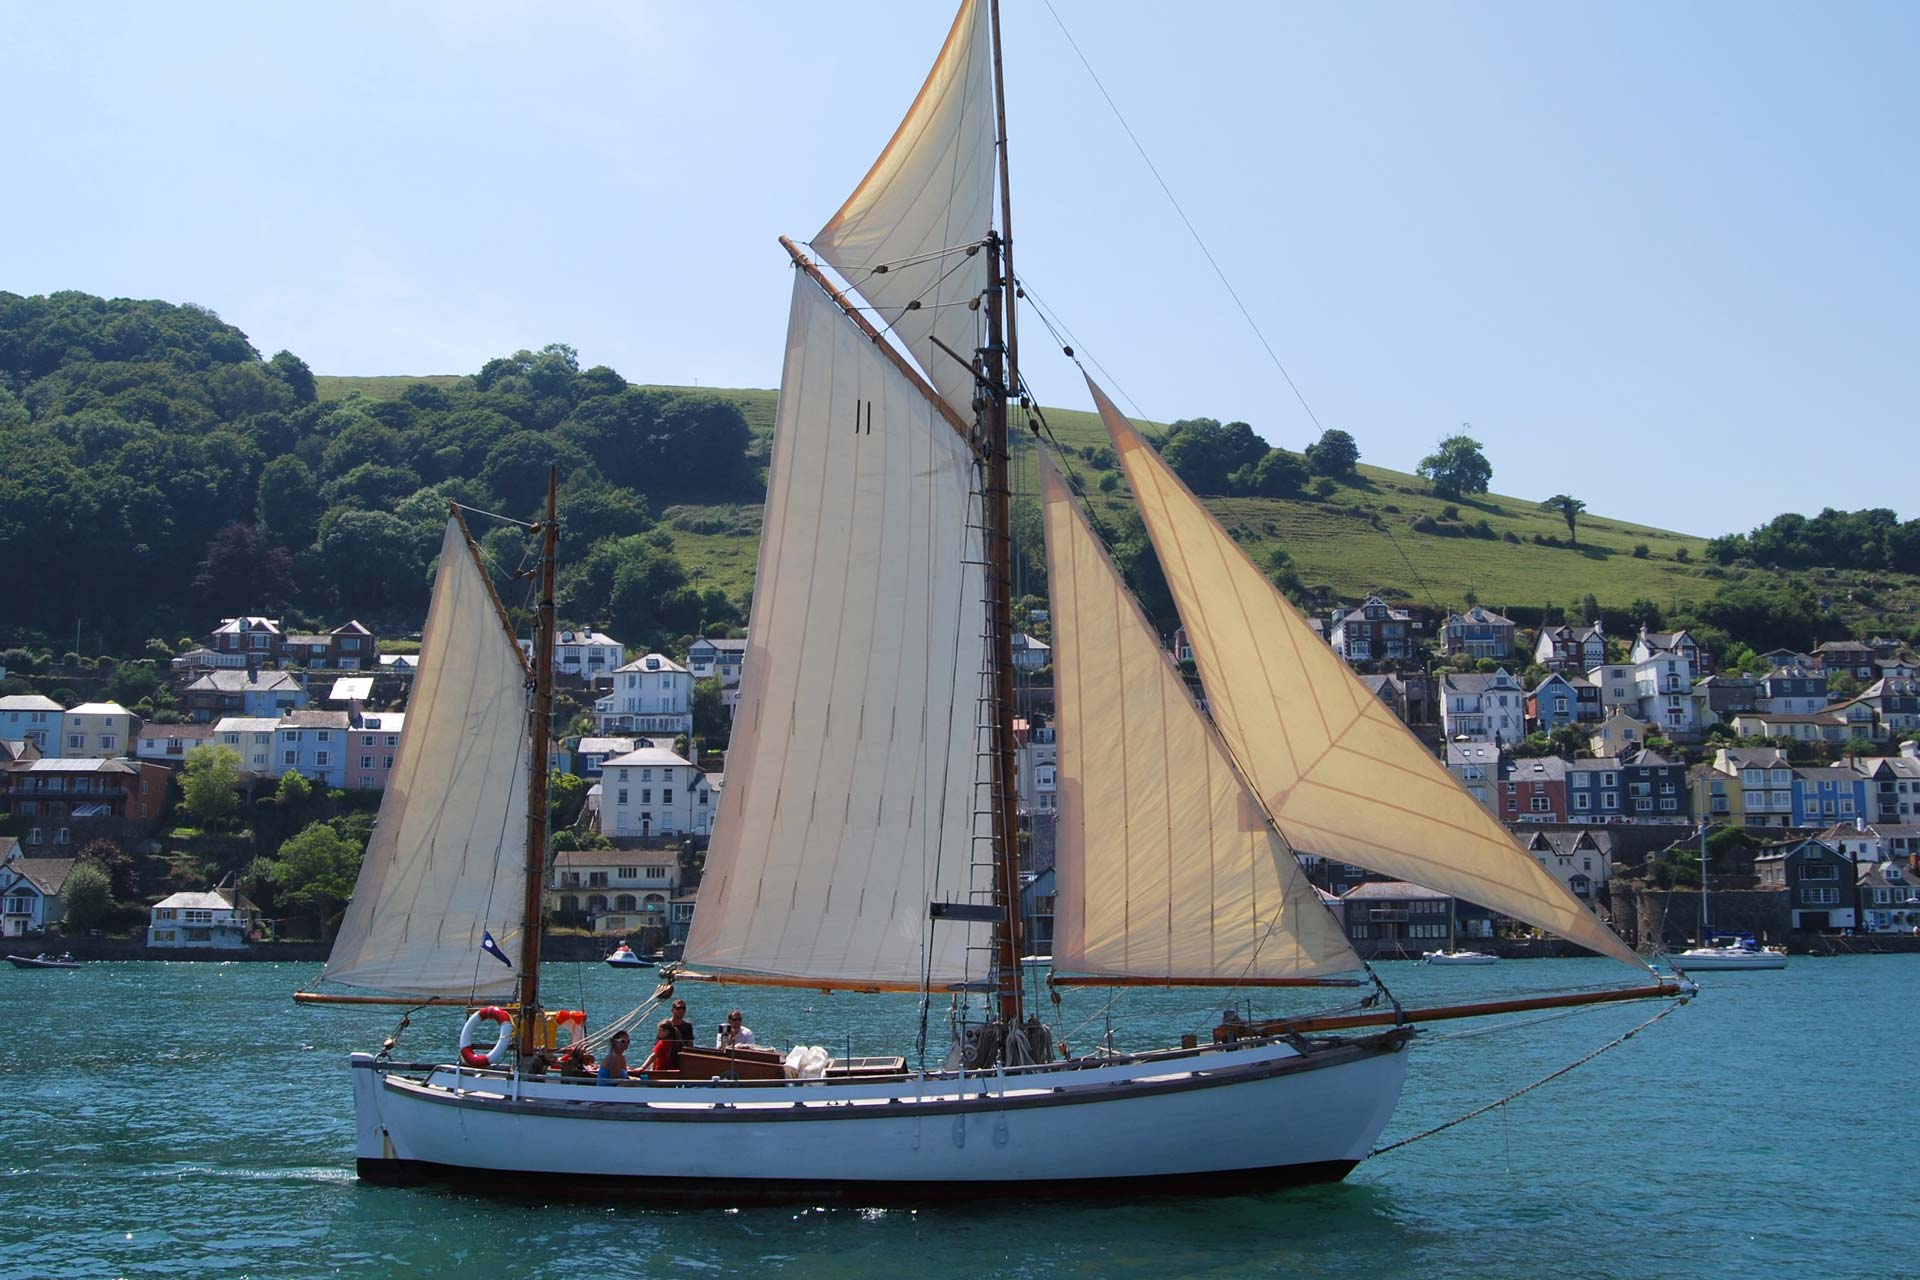 Escape sailing in dartmouth yacht holiday